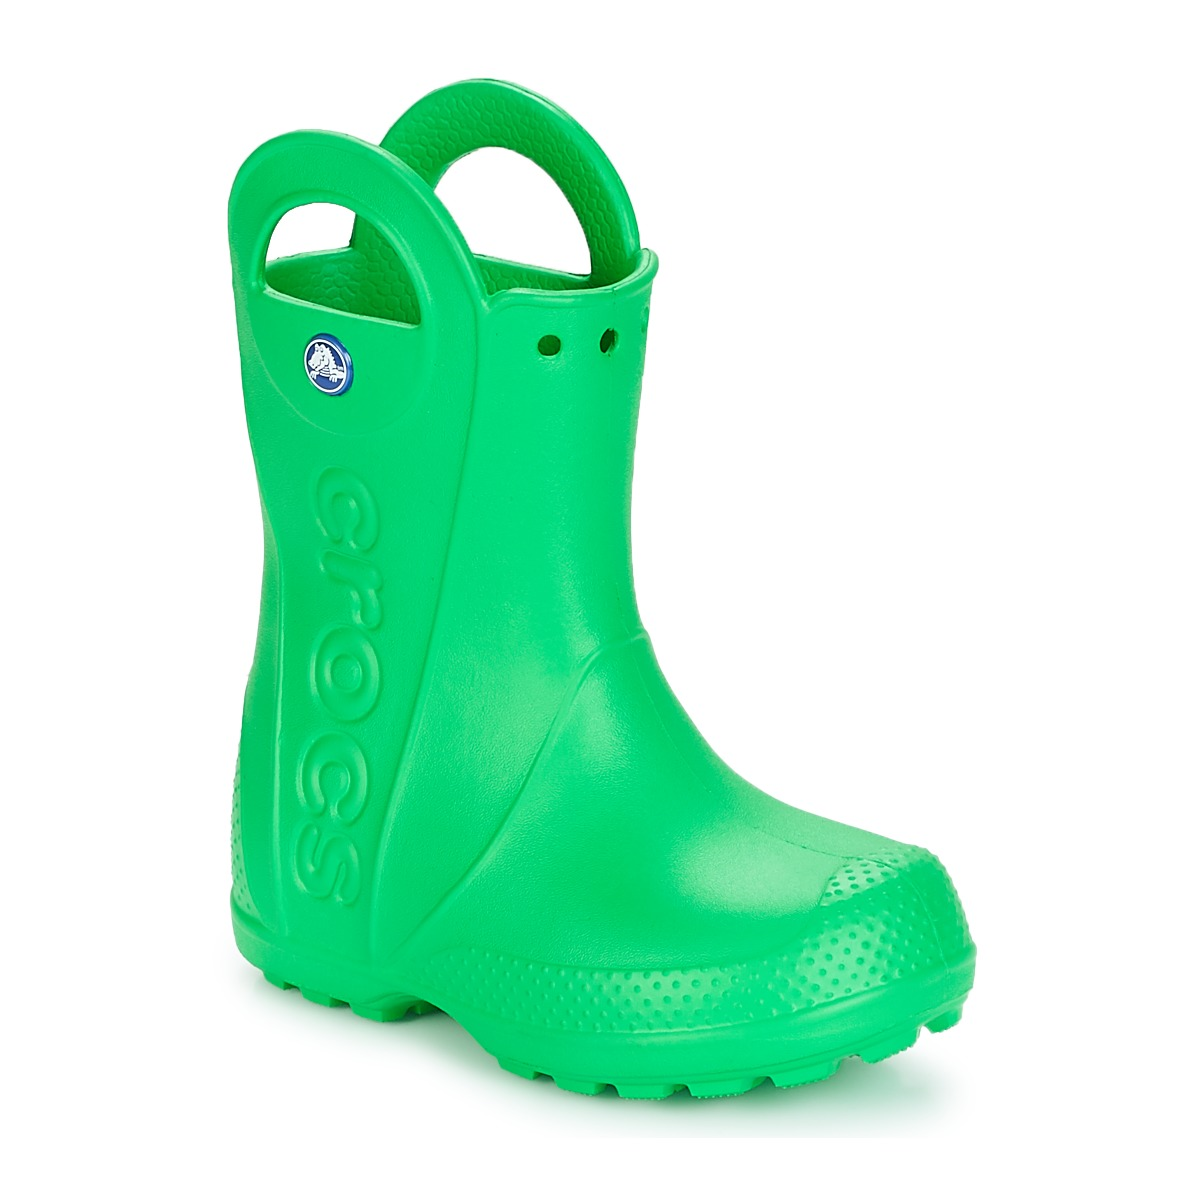 7f37fa25e0e67 Crocs Gumene čizme HANDLE IT RAIN BOOT KIDS Zelena - Jeftinije.hr